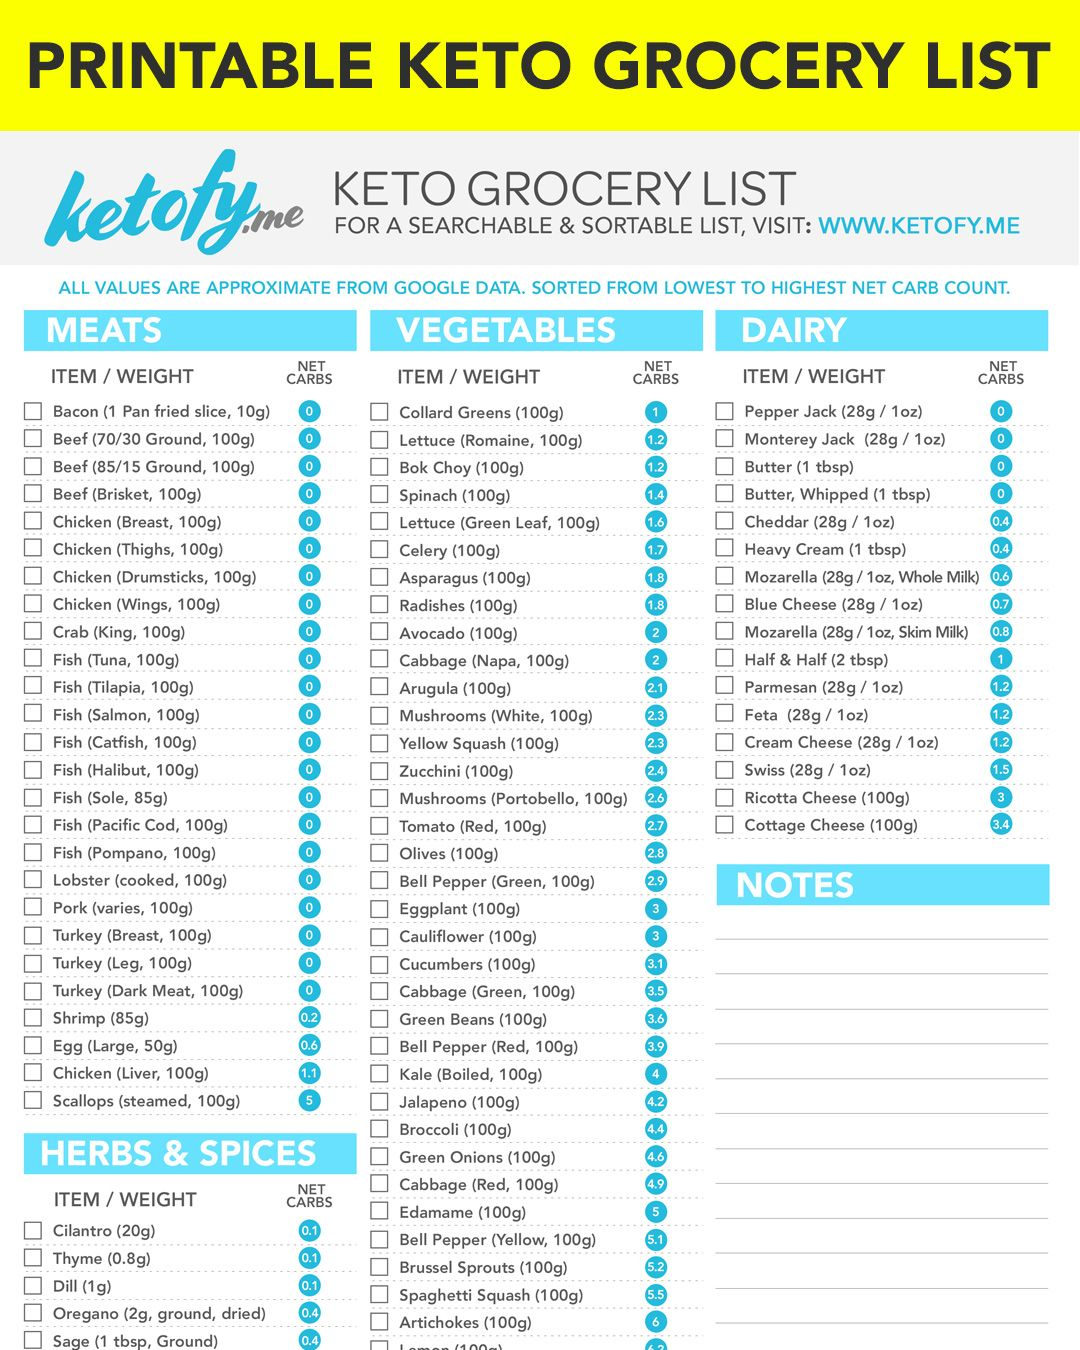 Keto Grocery List with Net Carbs Printable Downloadable